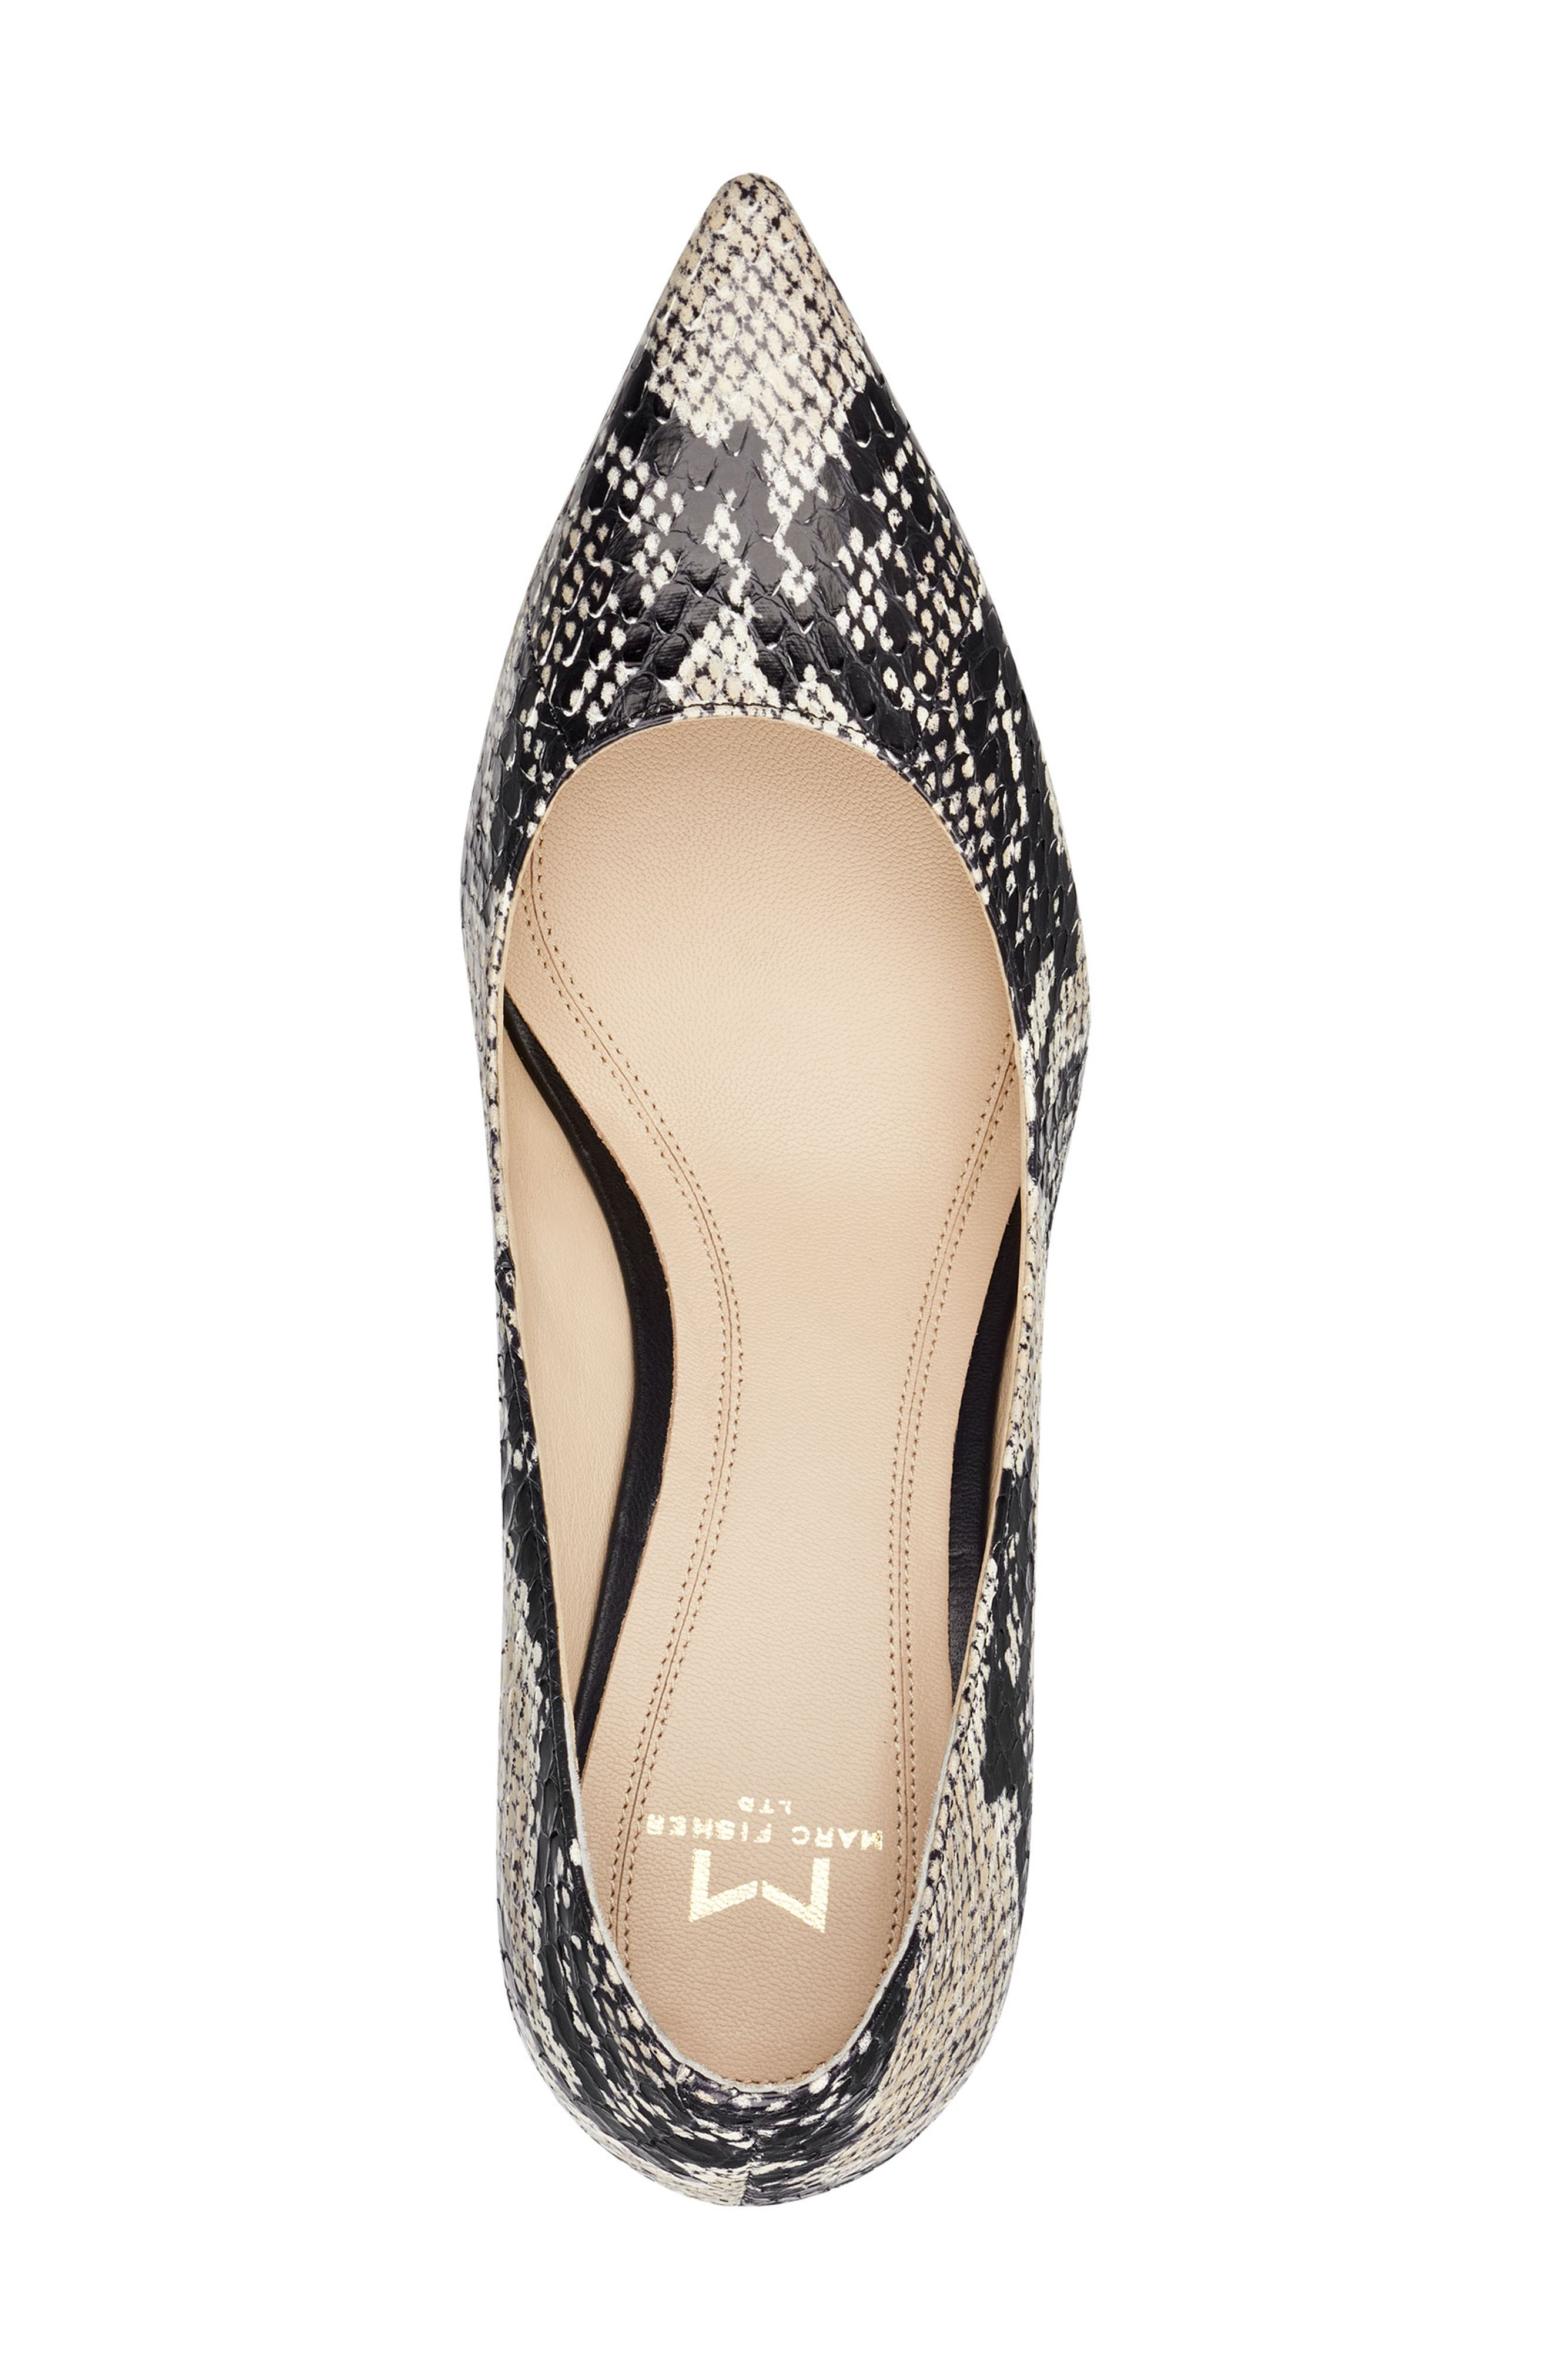 'Zala' Pump,                             Alternate thumbnail 5, color,                             BEIGE/ BLACK SNAKE PRINT